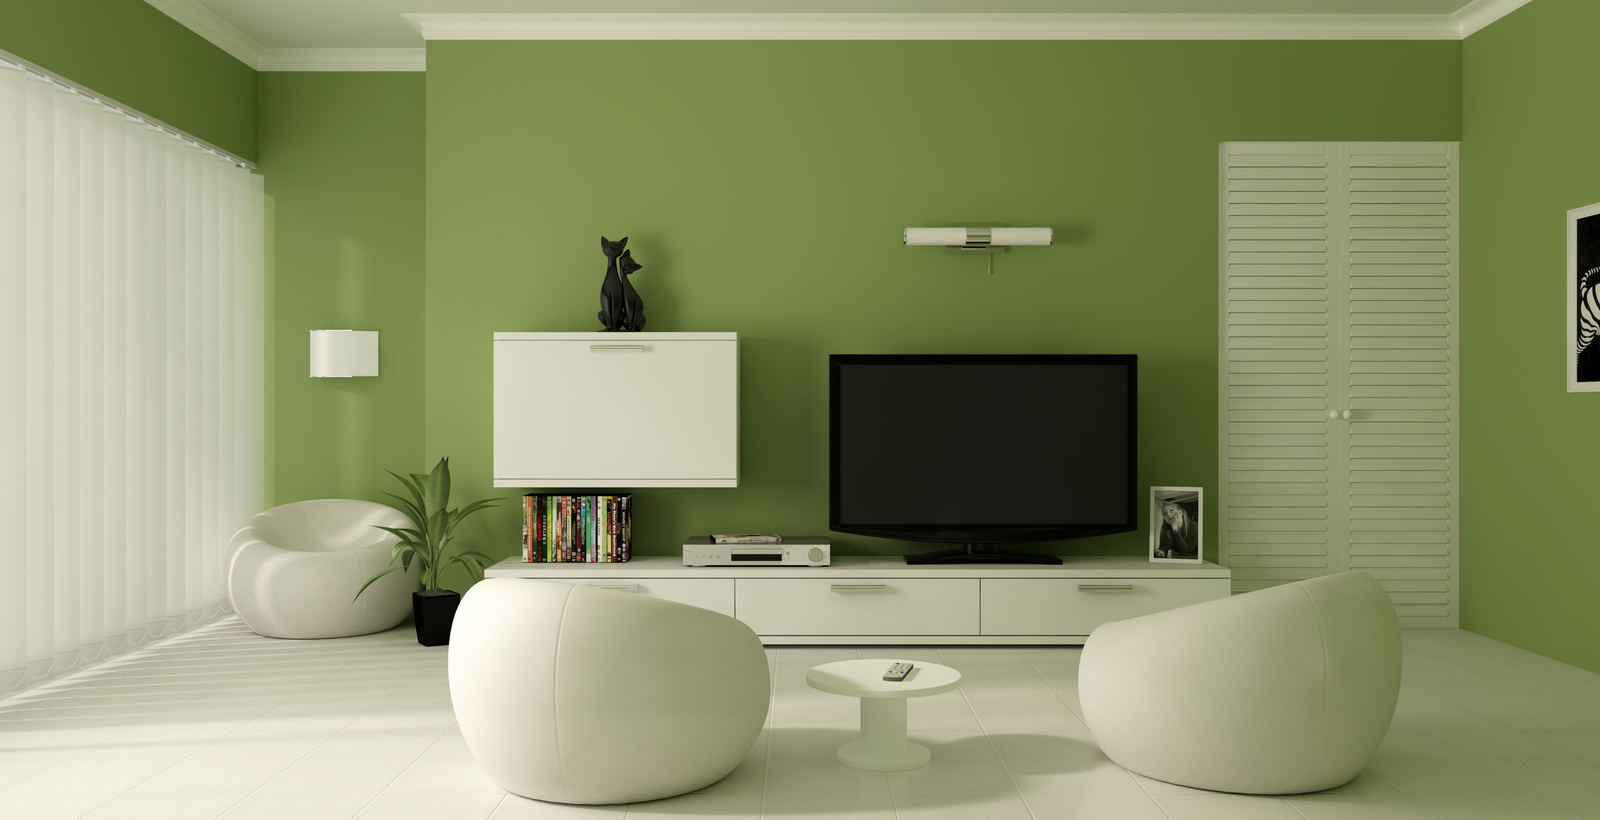 Tips To Make Your Room Look Larger | My Decorative